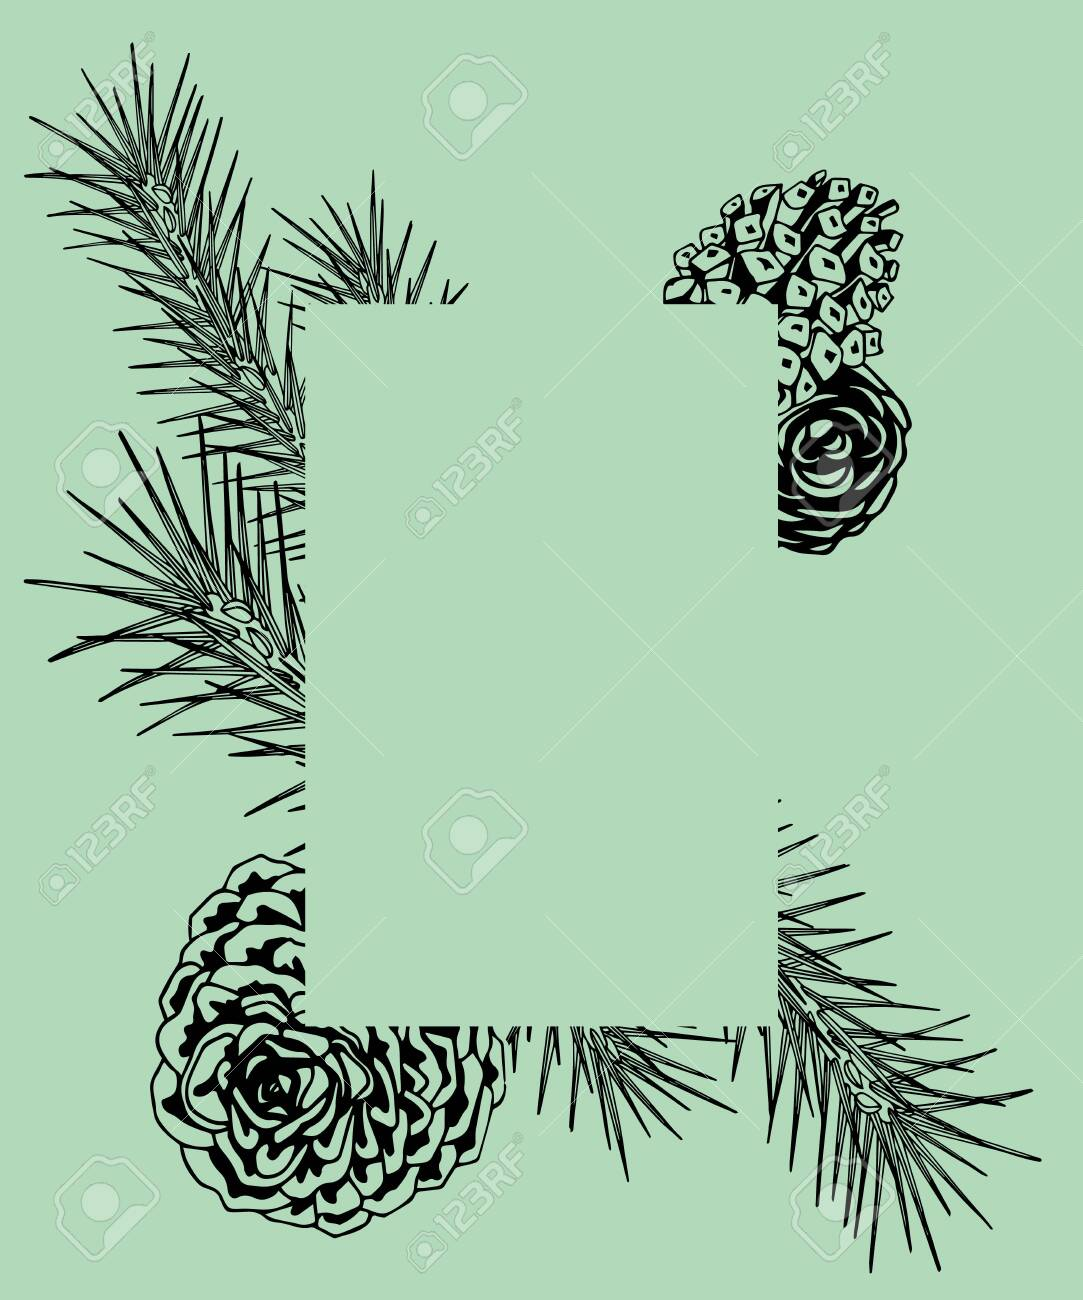 Framework With Pine Branches Cones Needles Decorative Twigs Royalty Free Cliparts Vectors And Stock Illustration Image 131548771